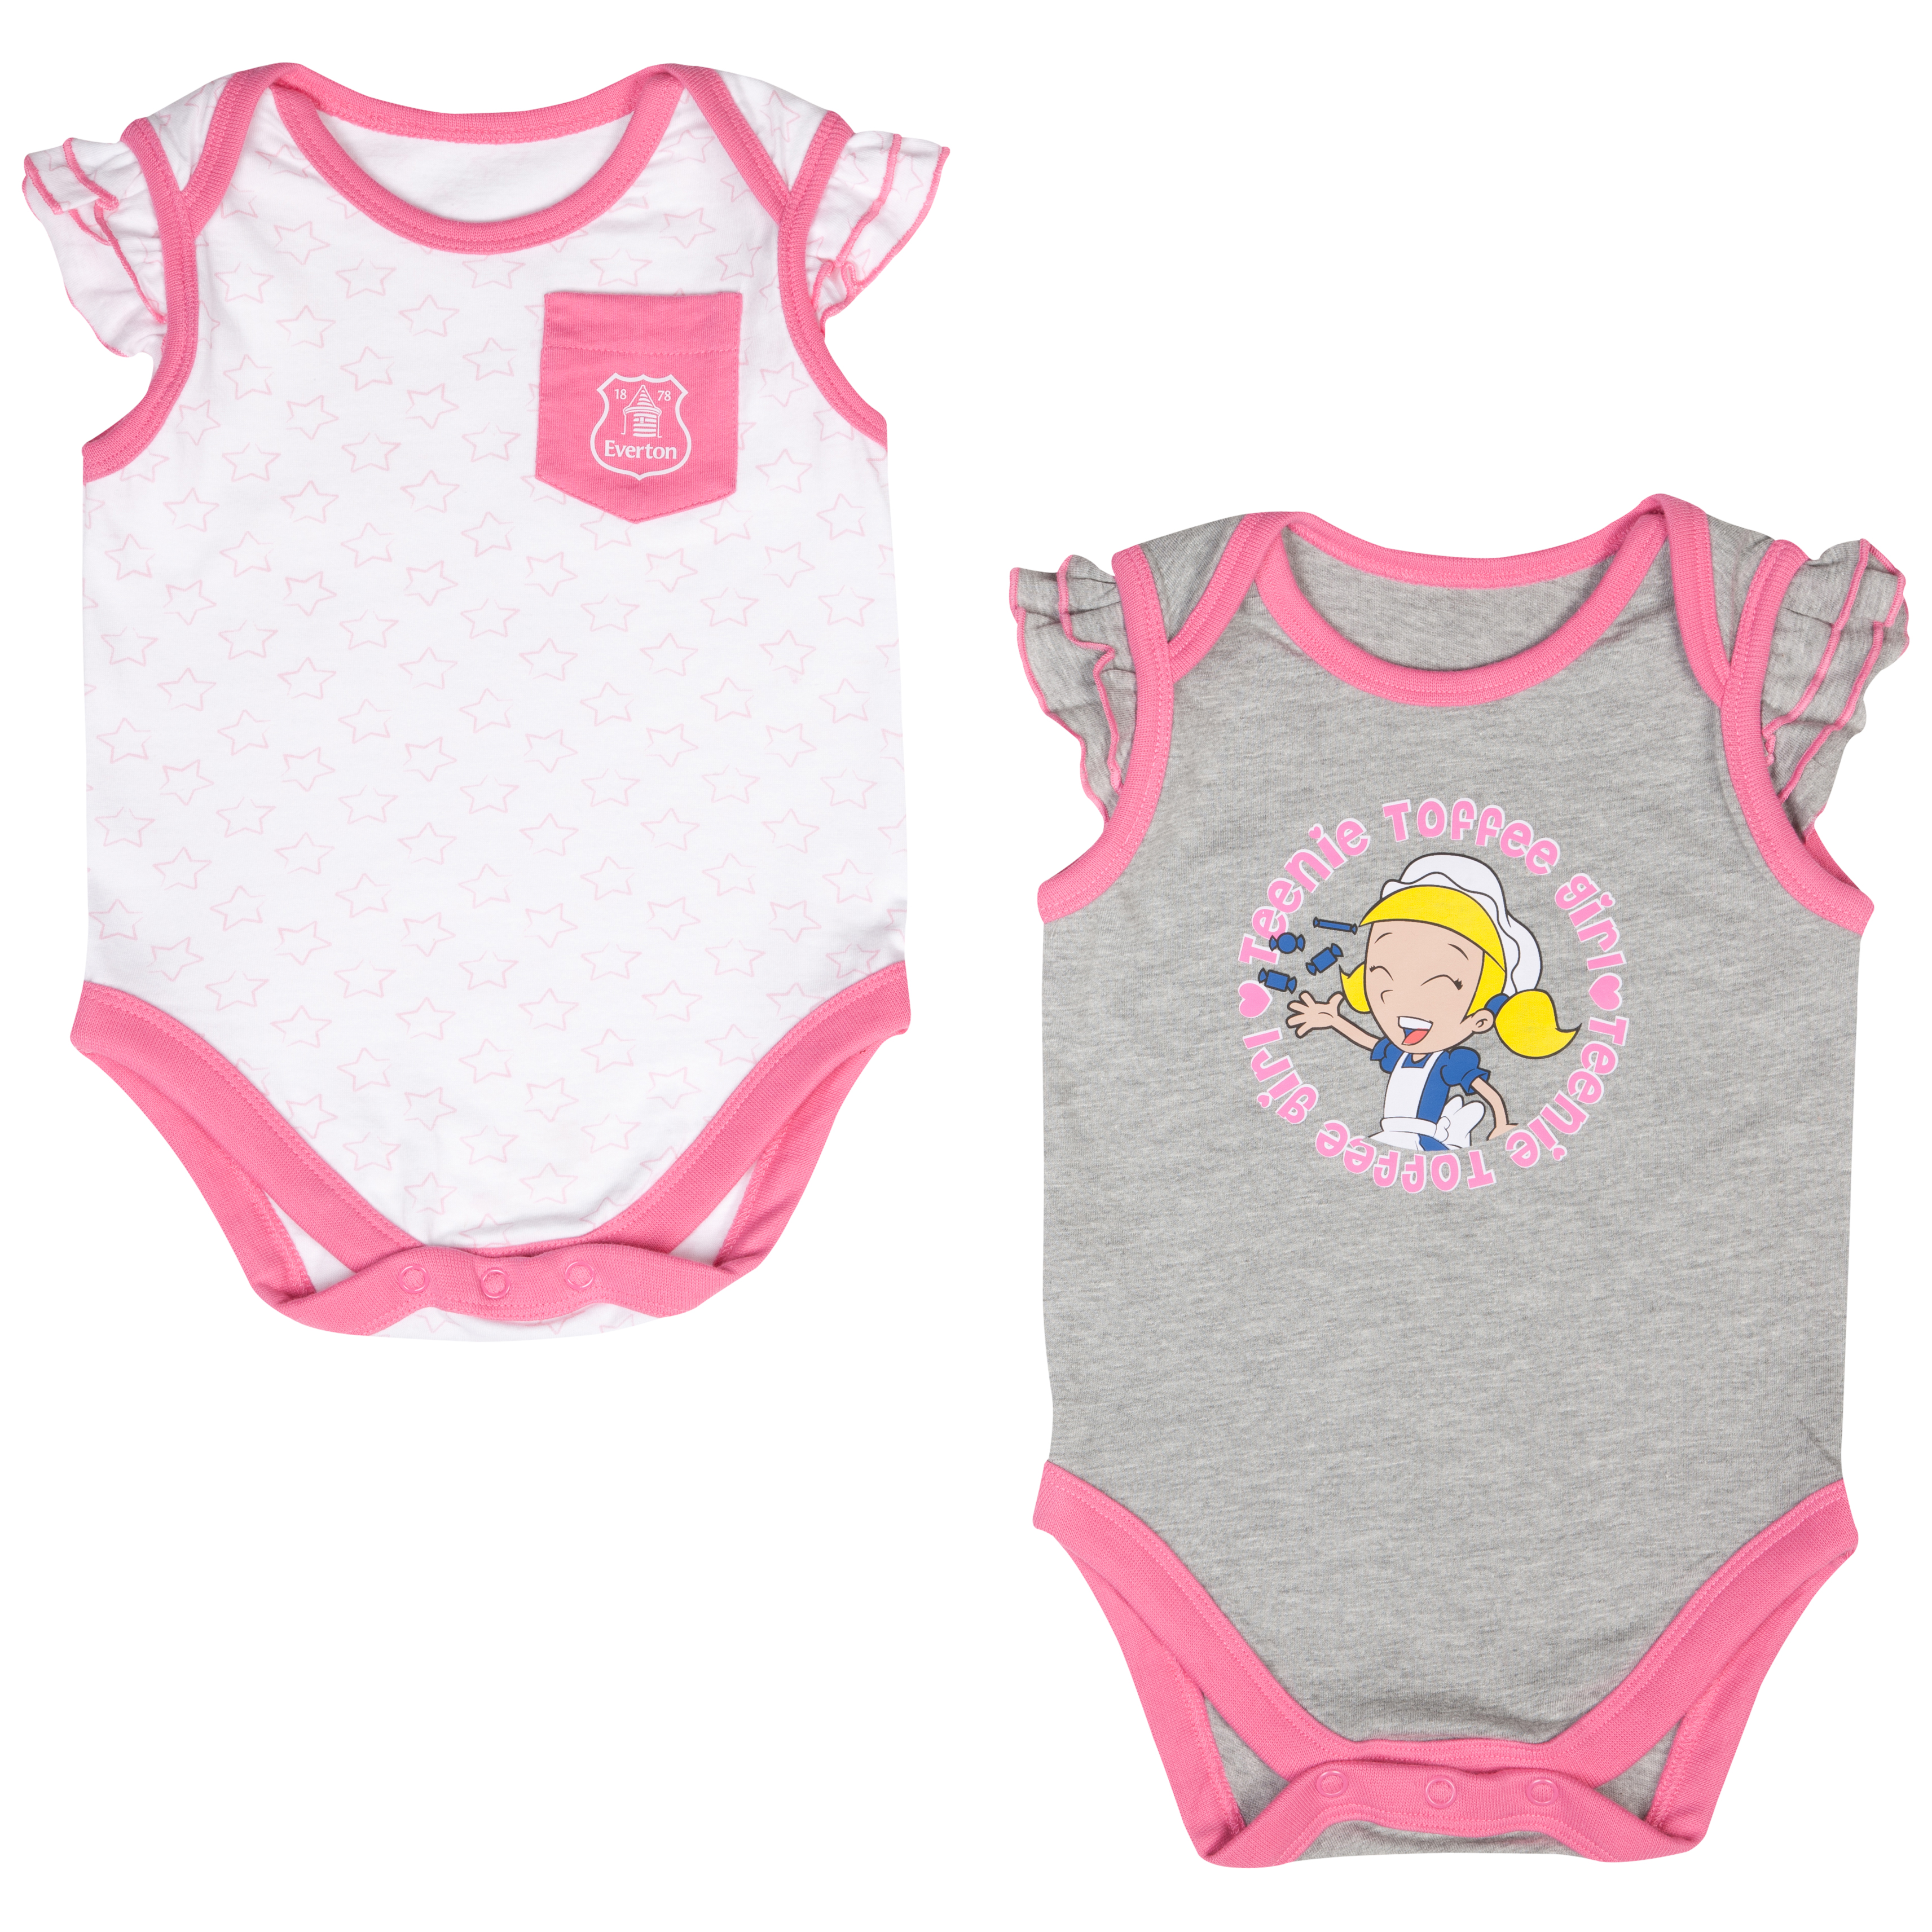 Everton Mascot Bodysuits - Pink/White/Grey - Baby